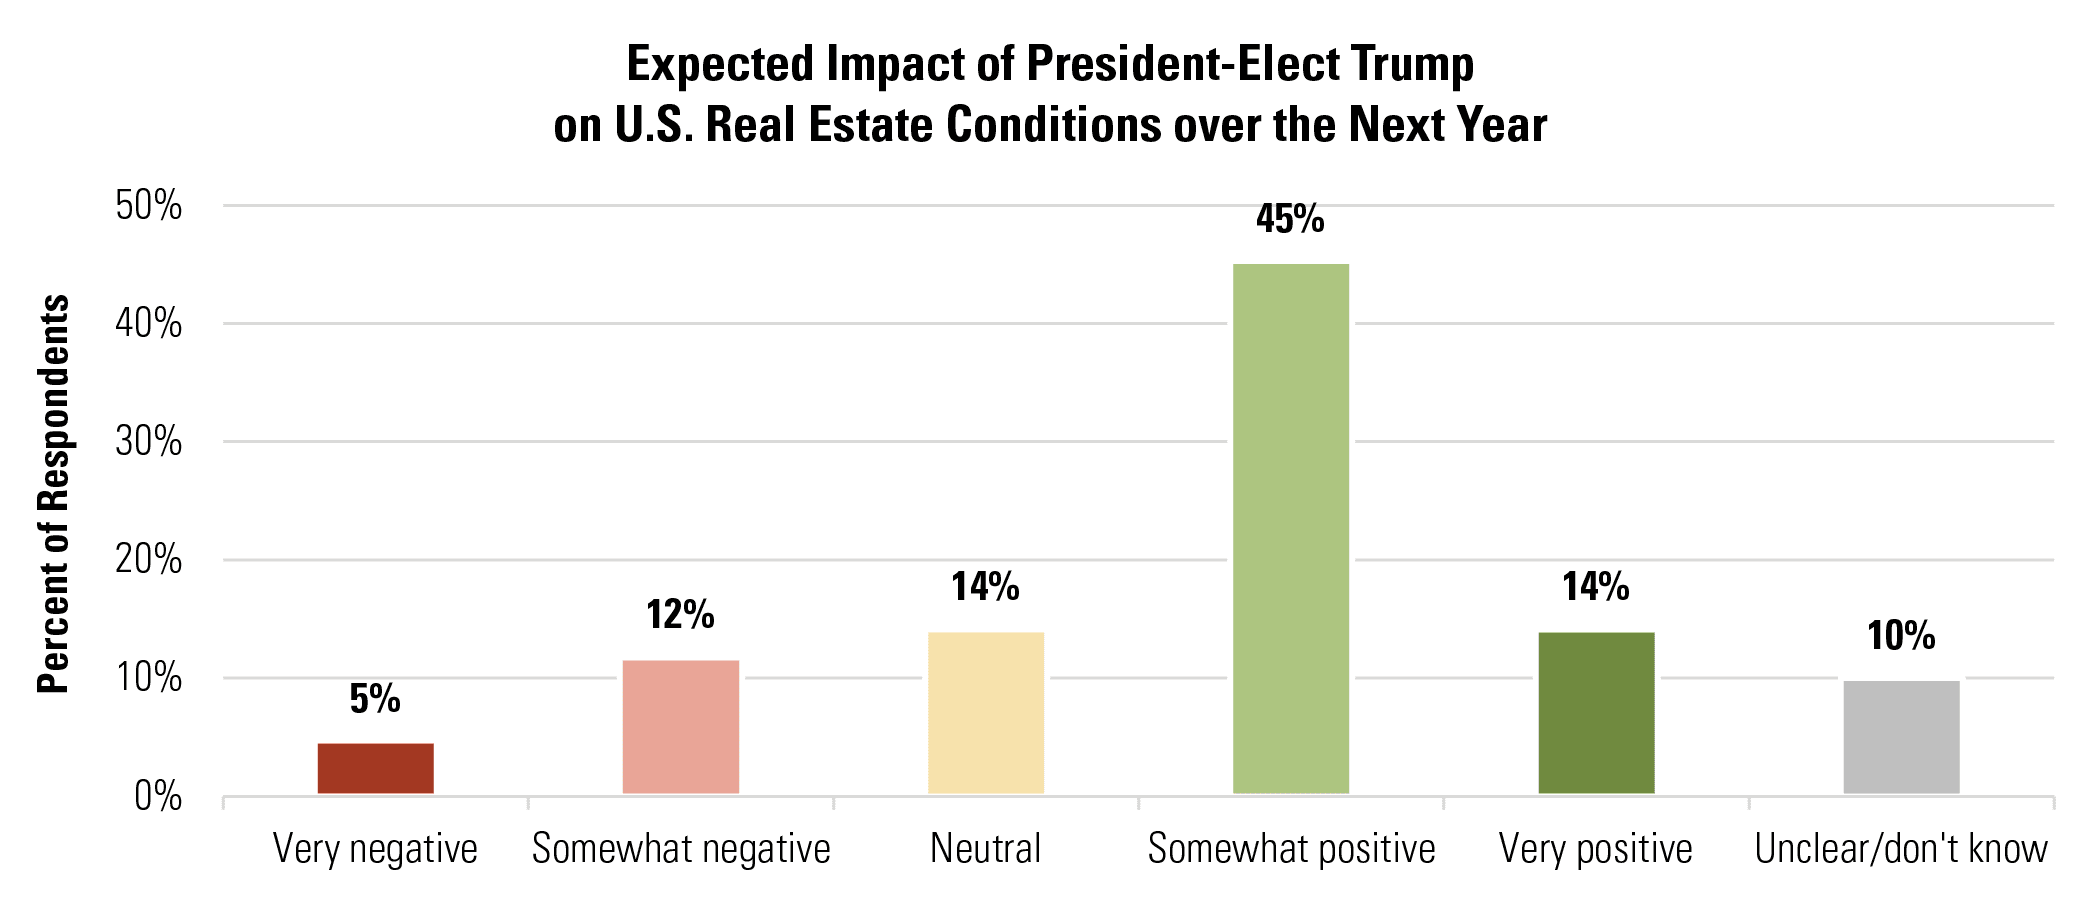 Expected Impact of President-Elect Trump on U.S. Real Estate Conditions over the Next Year